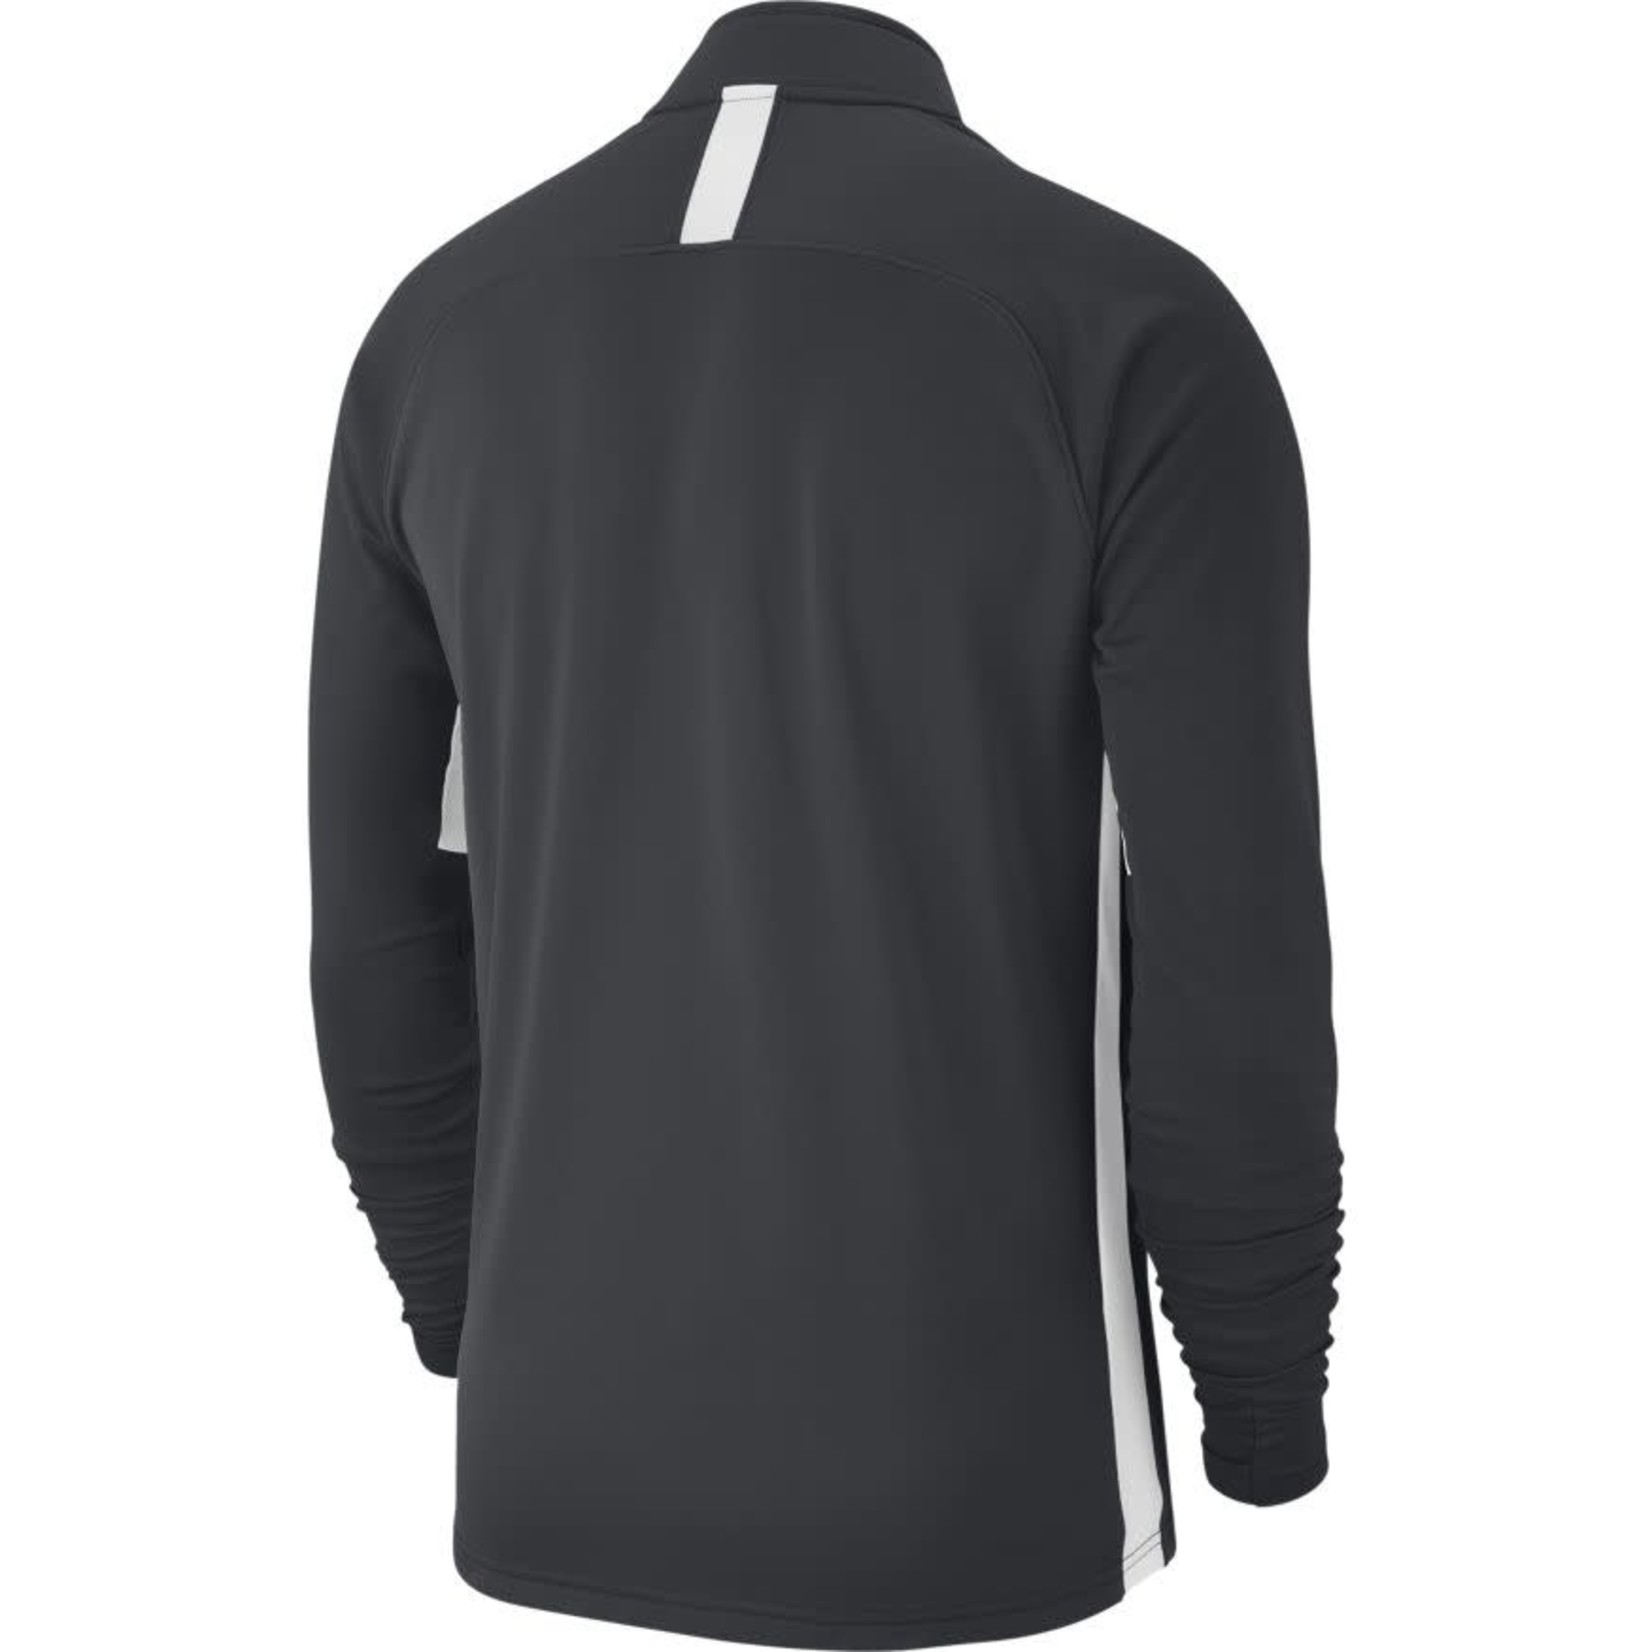 NIKE ACADEMY 19 DRILL TOP YOUTH